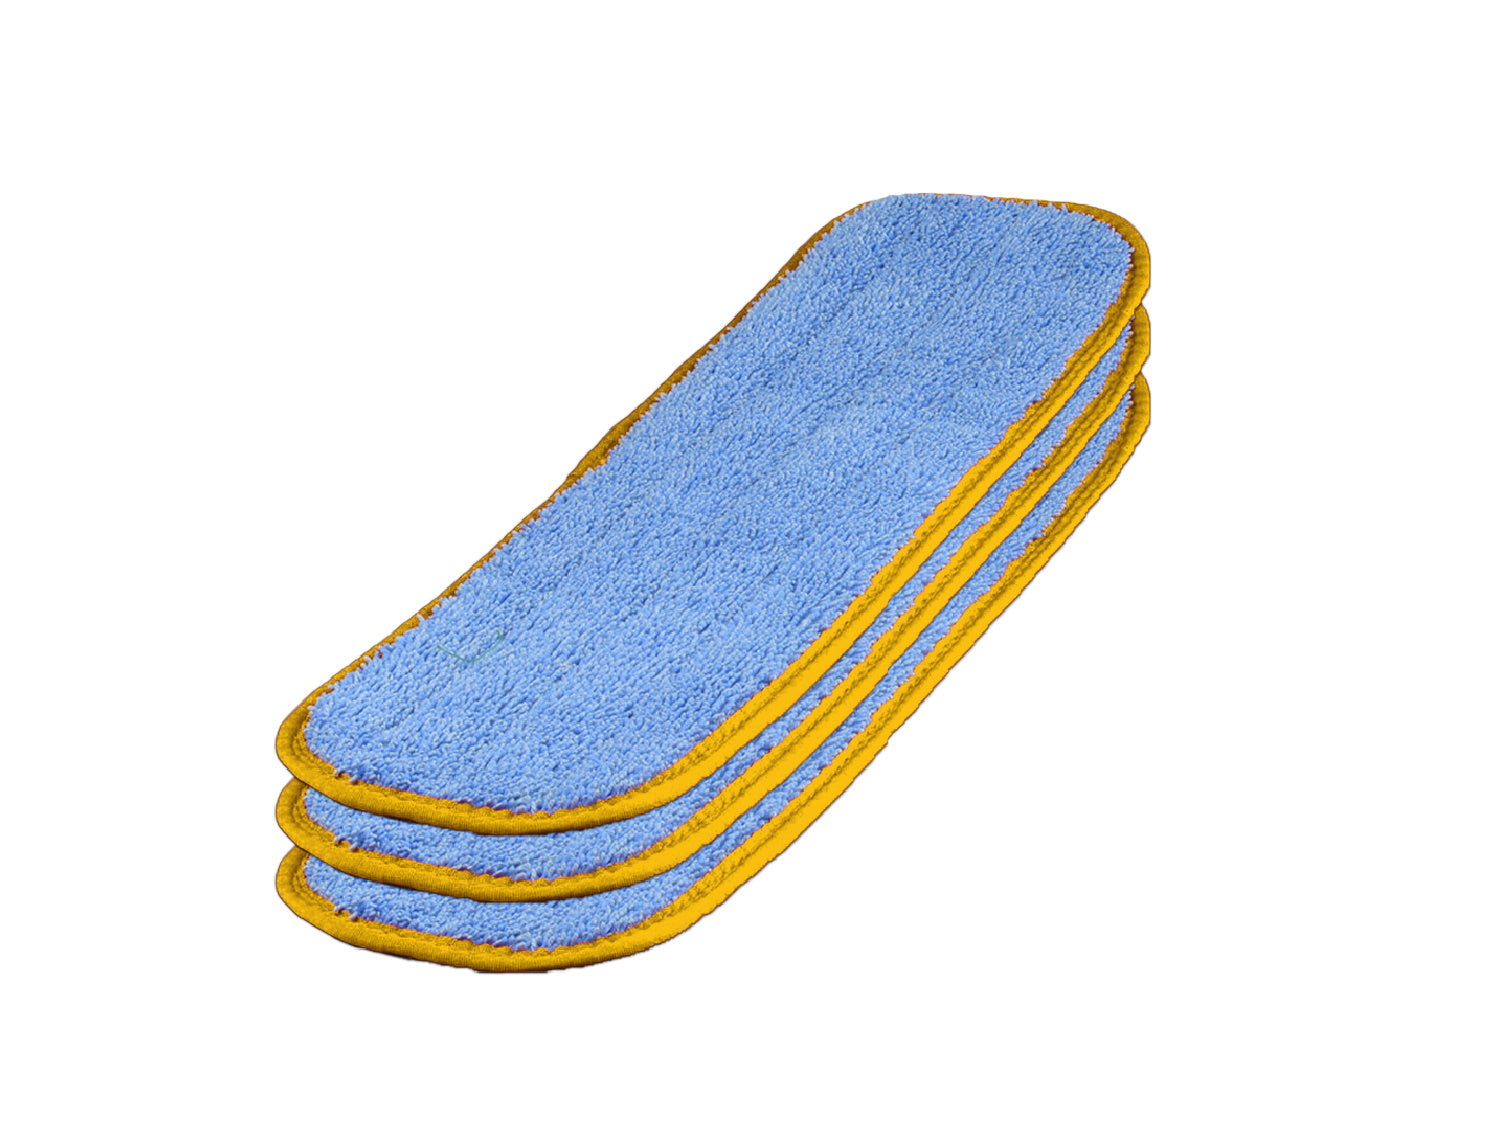 MWMCC-18 Inch Color Coded Microfiber Wet Mop Pads Prevent Cross Contamination